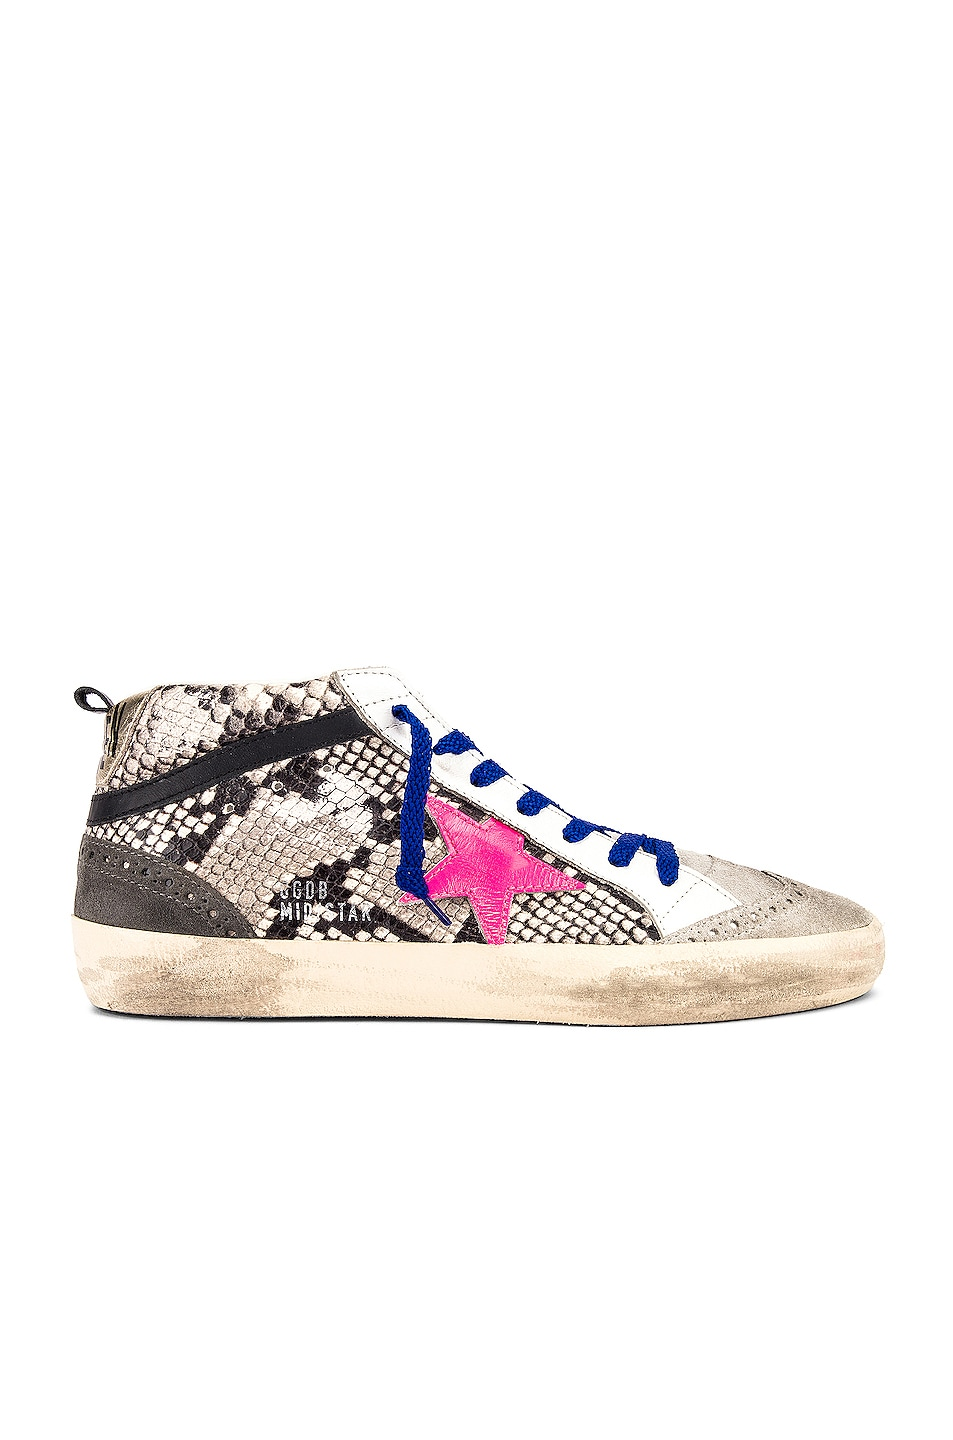 Image 1 of Golden Goose Mid Star Sneaker in Rock Snake & Fuchsia